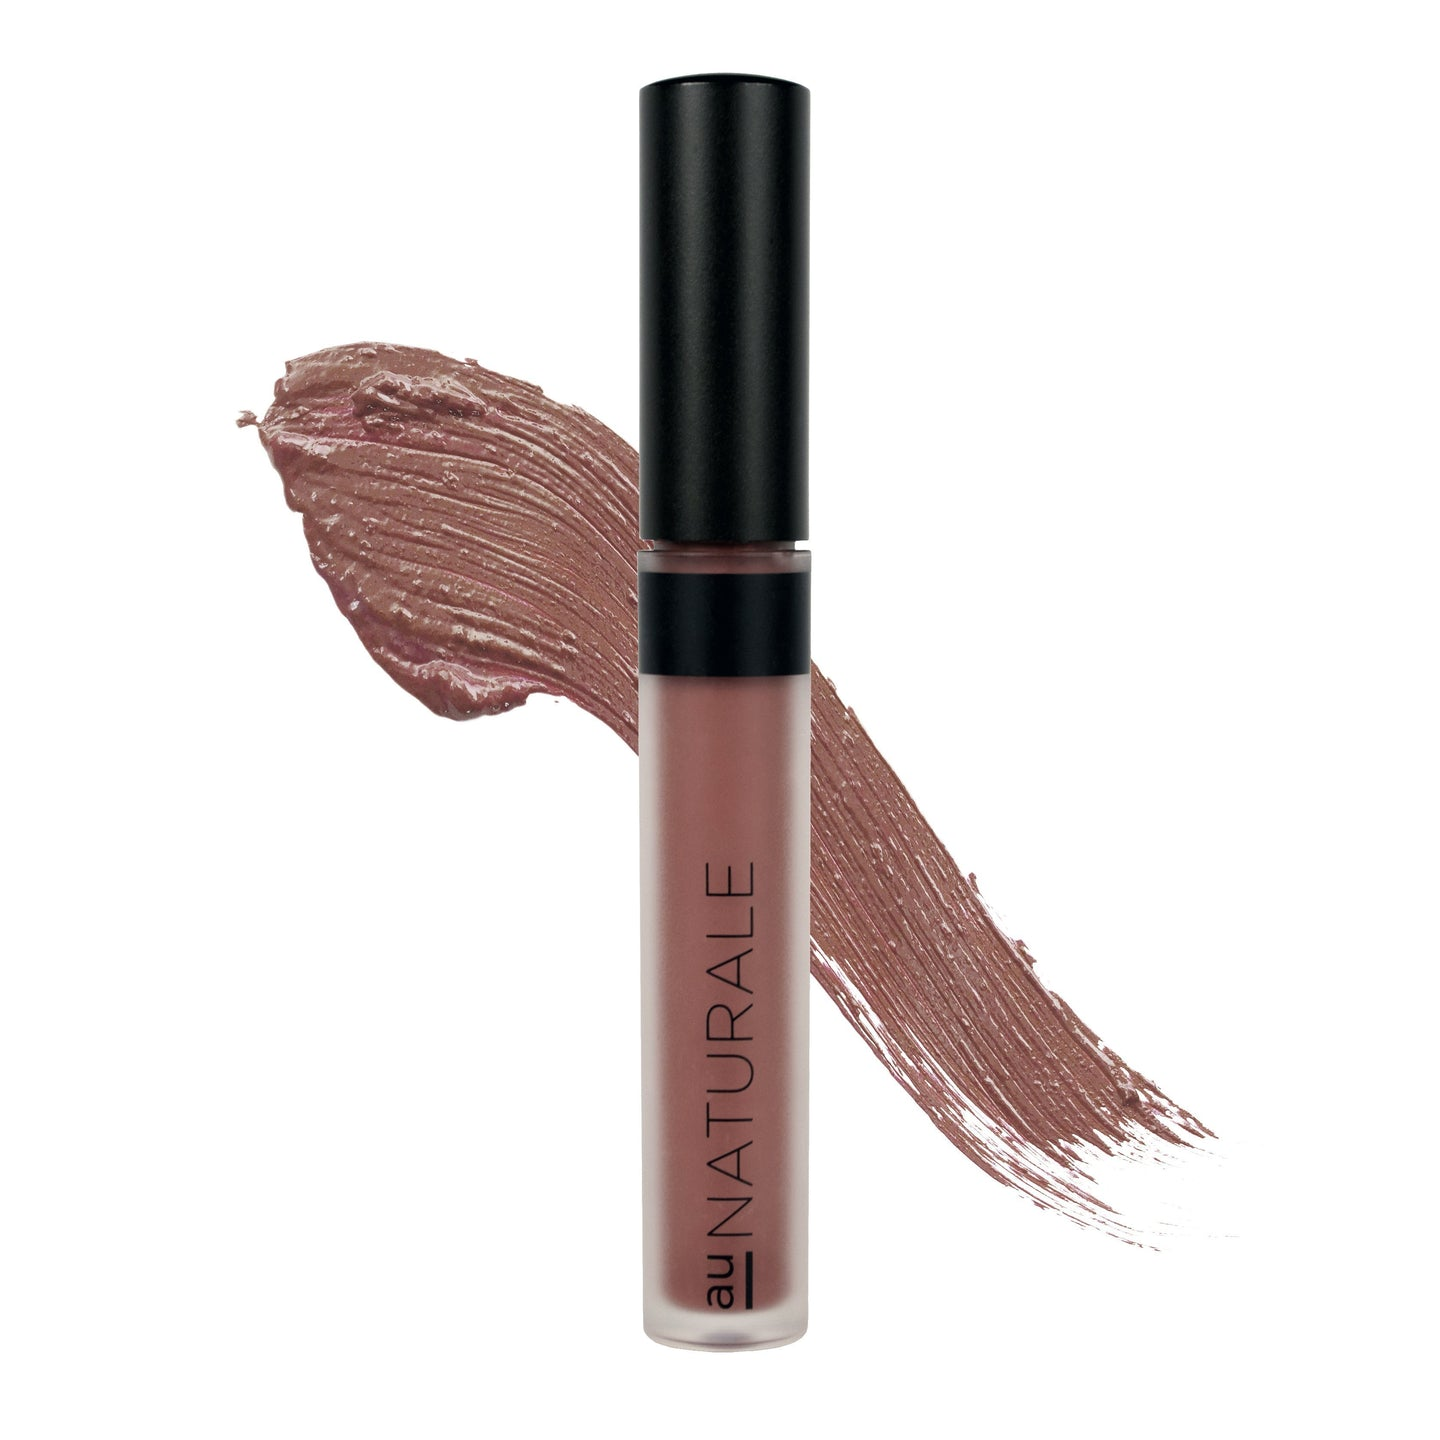 Shop su/Stain Liquid Lipstick in Mousse by Au Naturale Cosmetics - Lets make it a trend #explorebeautiful lips and lip stains